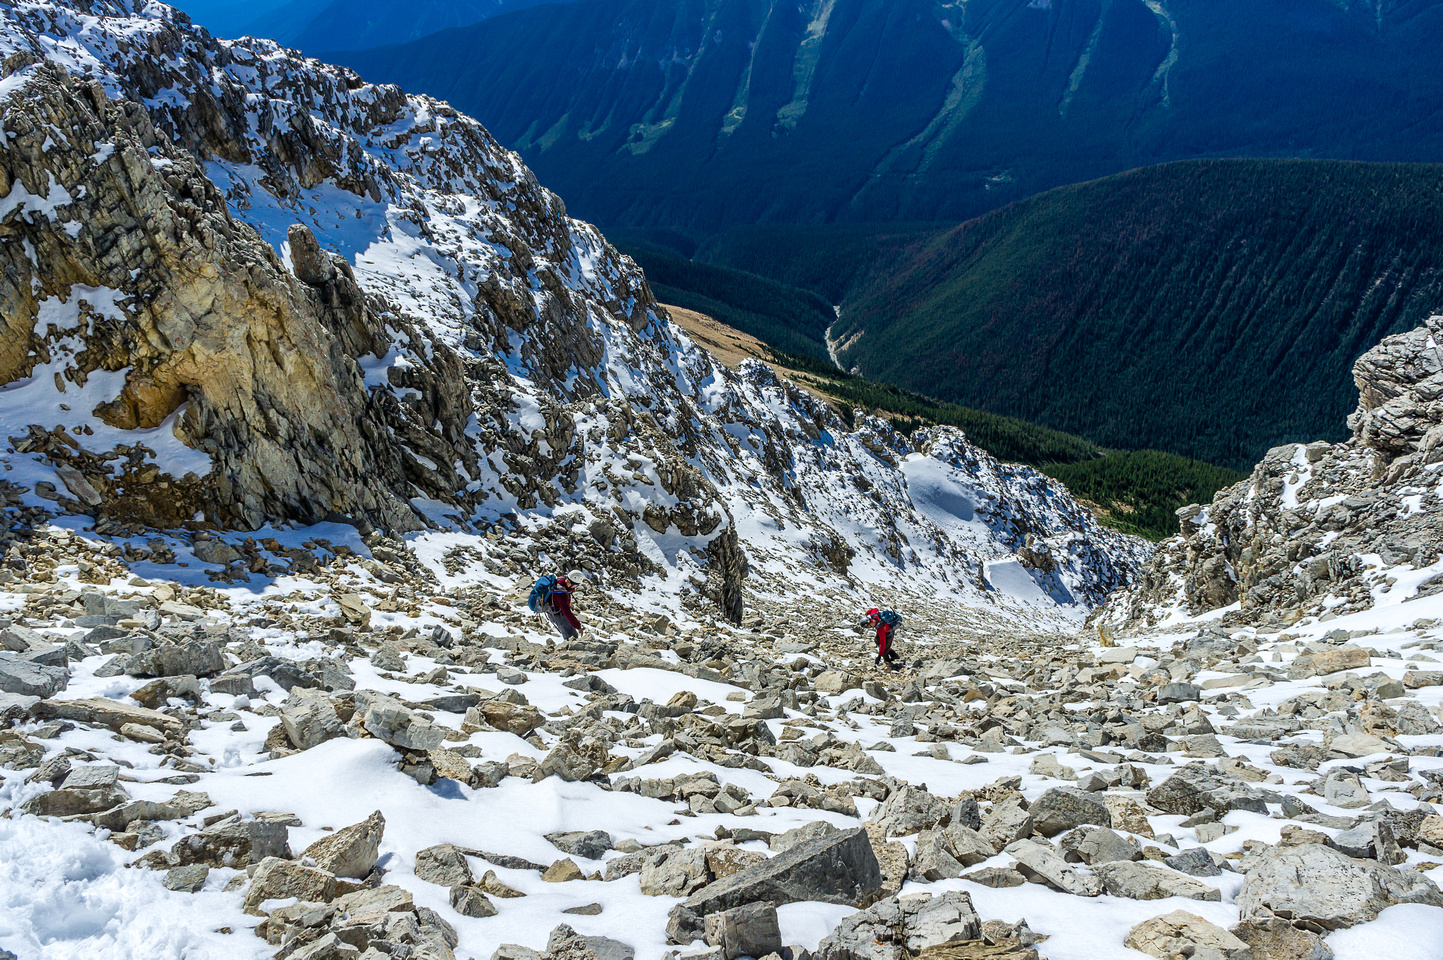 Descending the scree gully.